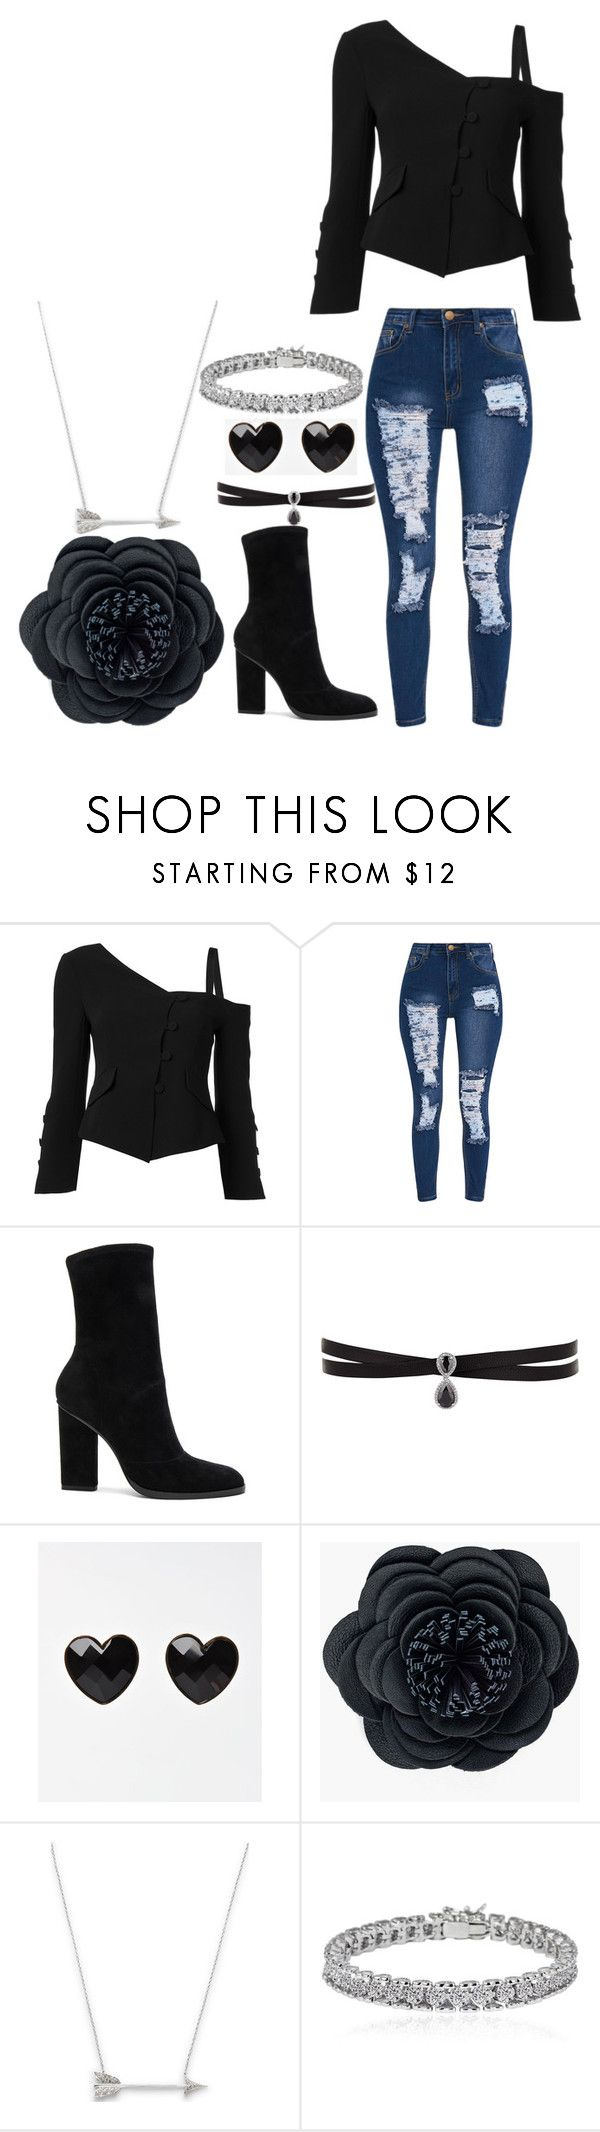 """""""Untitled #1080"""" by marythedemon ❤ liked on Polyvore featuring Cinq à Sept, Alexander Wang, Fallon, Chico's, Estella Bartlett and Apples & Figs"""